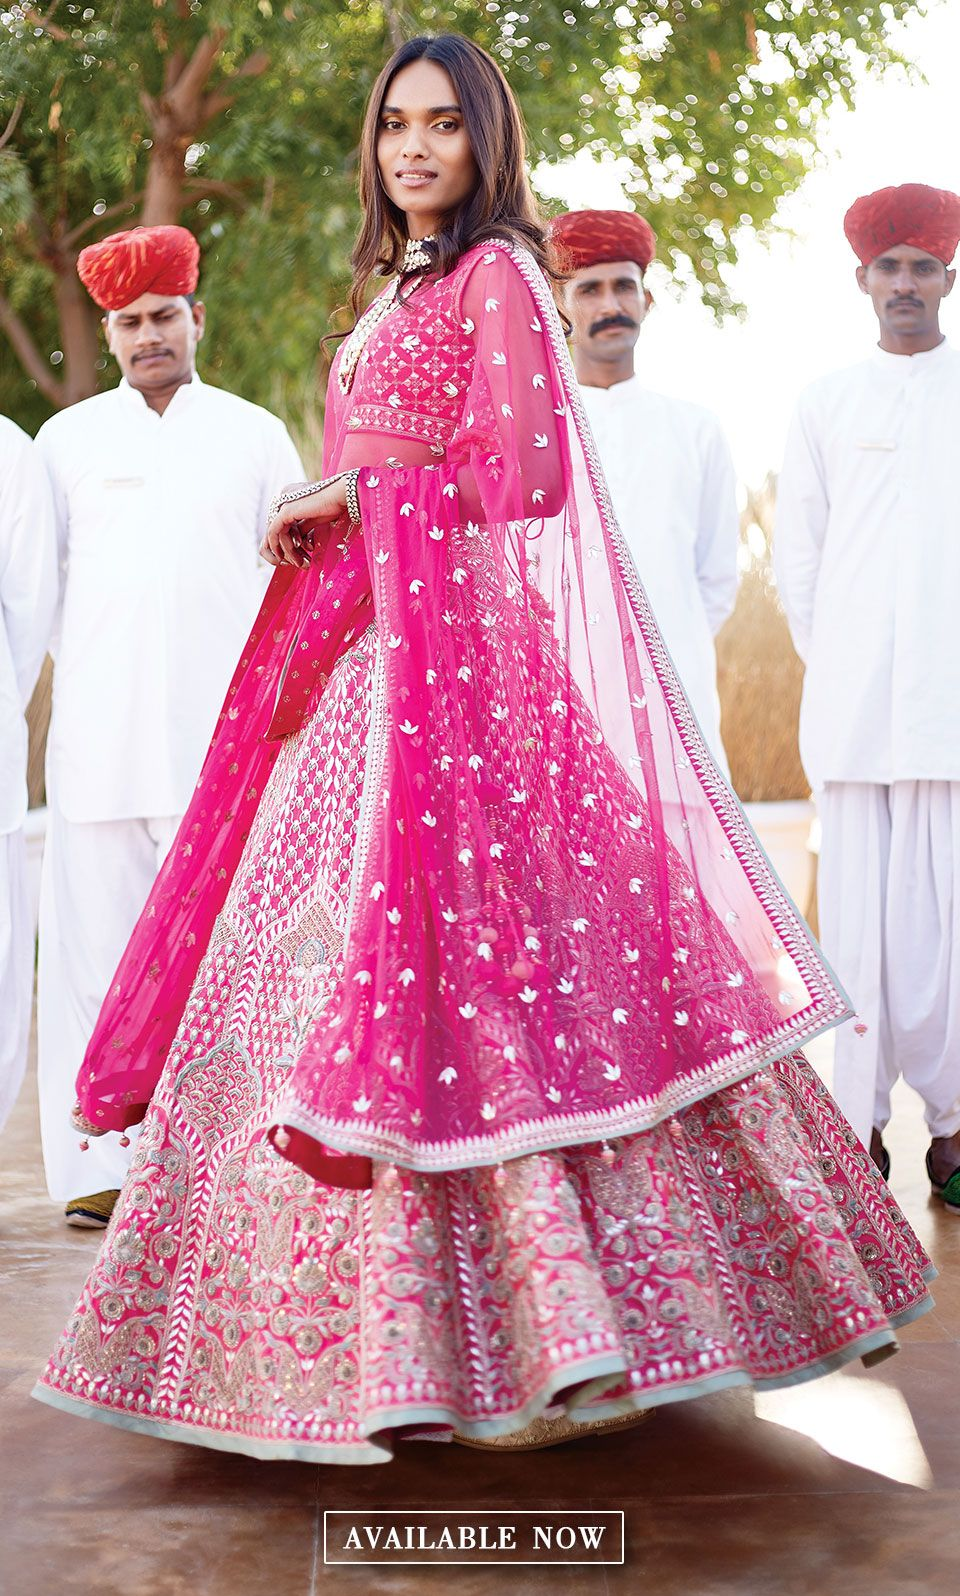 Anita Dongre Official – Sustainable Luxury Fashion & Bridal Couture ...